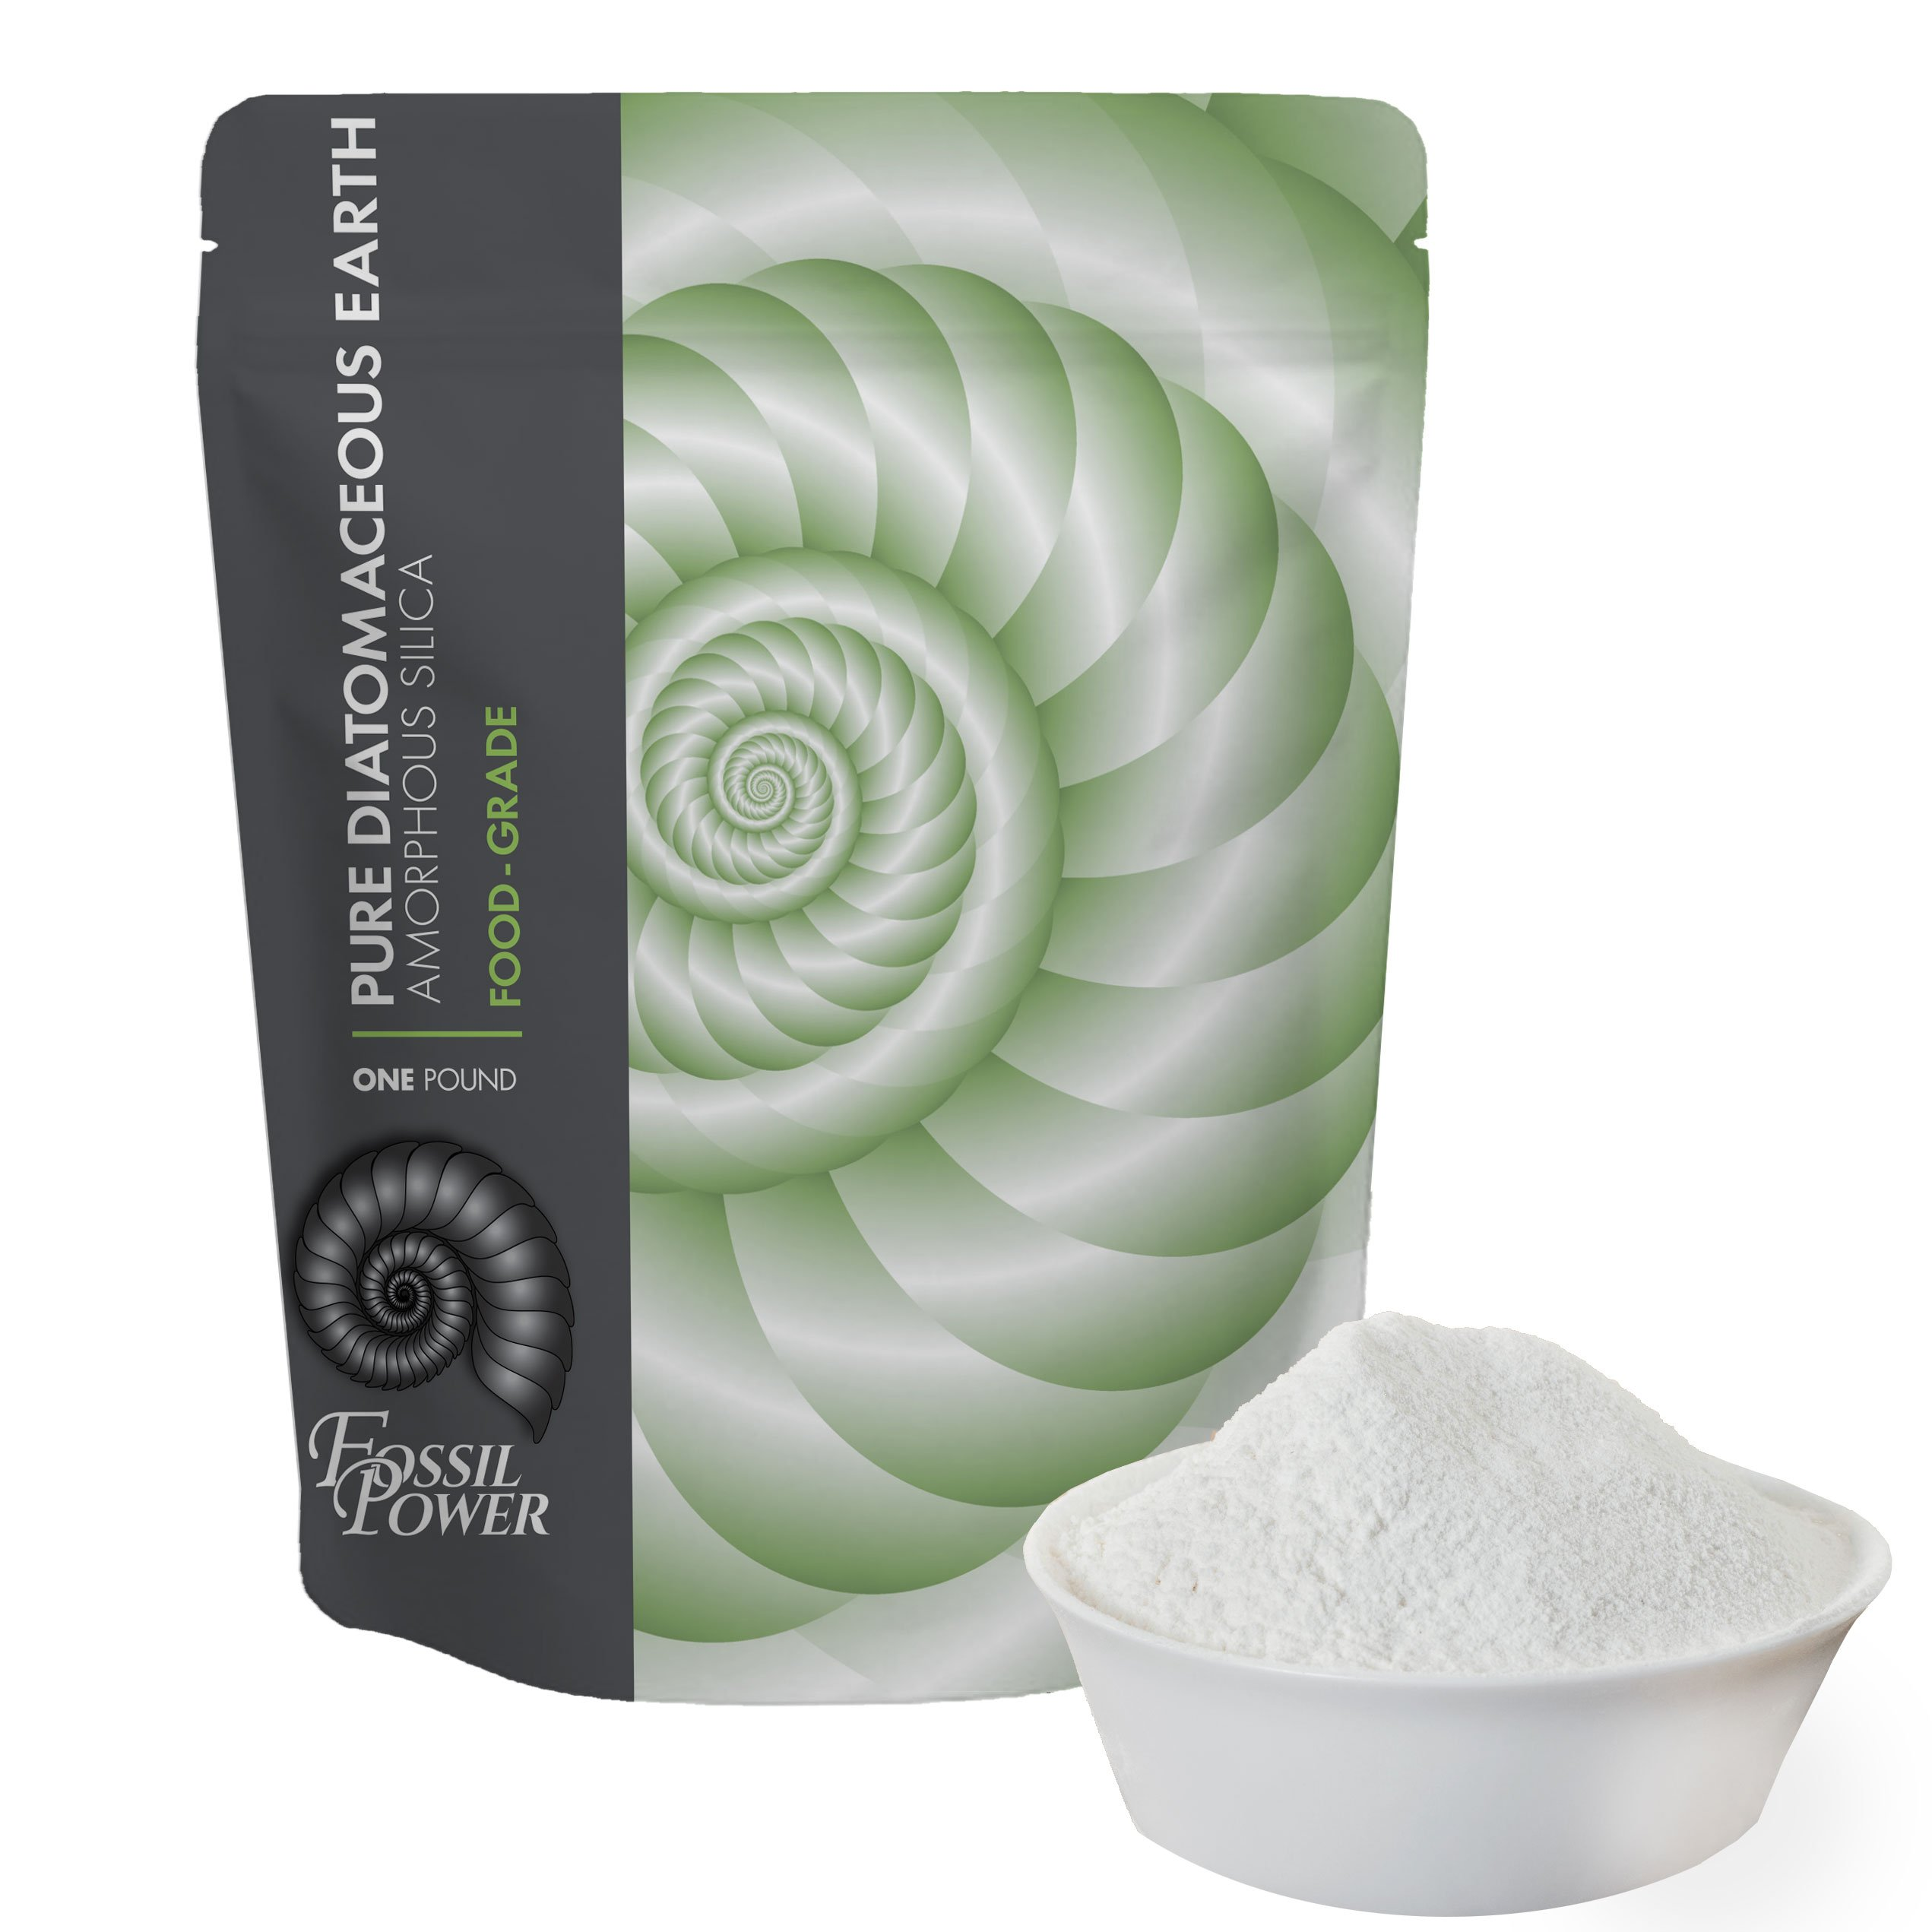 Fossil Power Diatomaceous Earth Food Grade Powder - 1 lb. Bulk Resealable Bag - Safe for Human and Pet Consumption or Outdoor Uses with Dust Applicator - Detoxify Your Body Inside and Out Brand